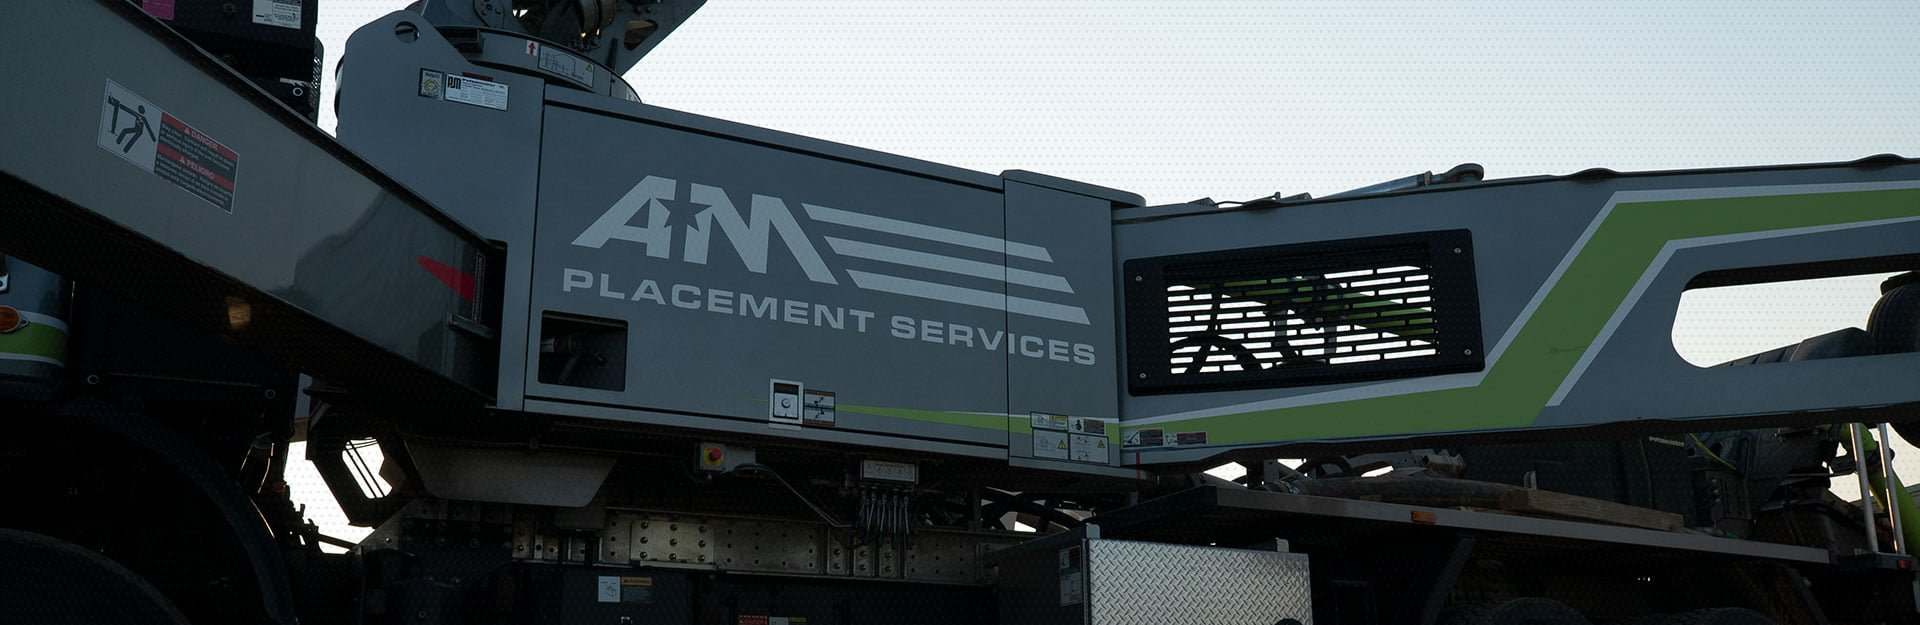 An AM Placement Services machinery that is a dark-green color with the AM logo being featured on the side of the machine.